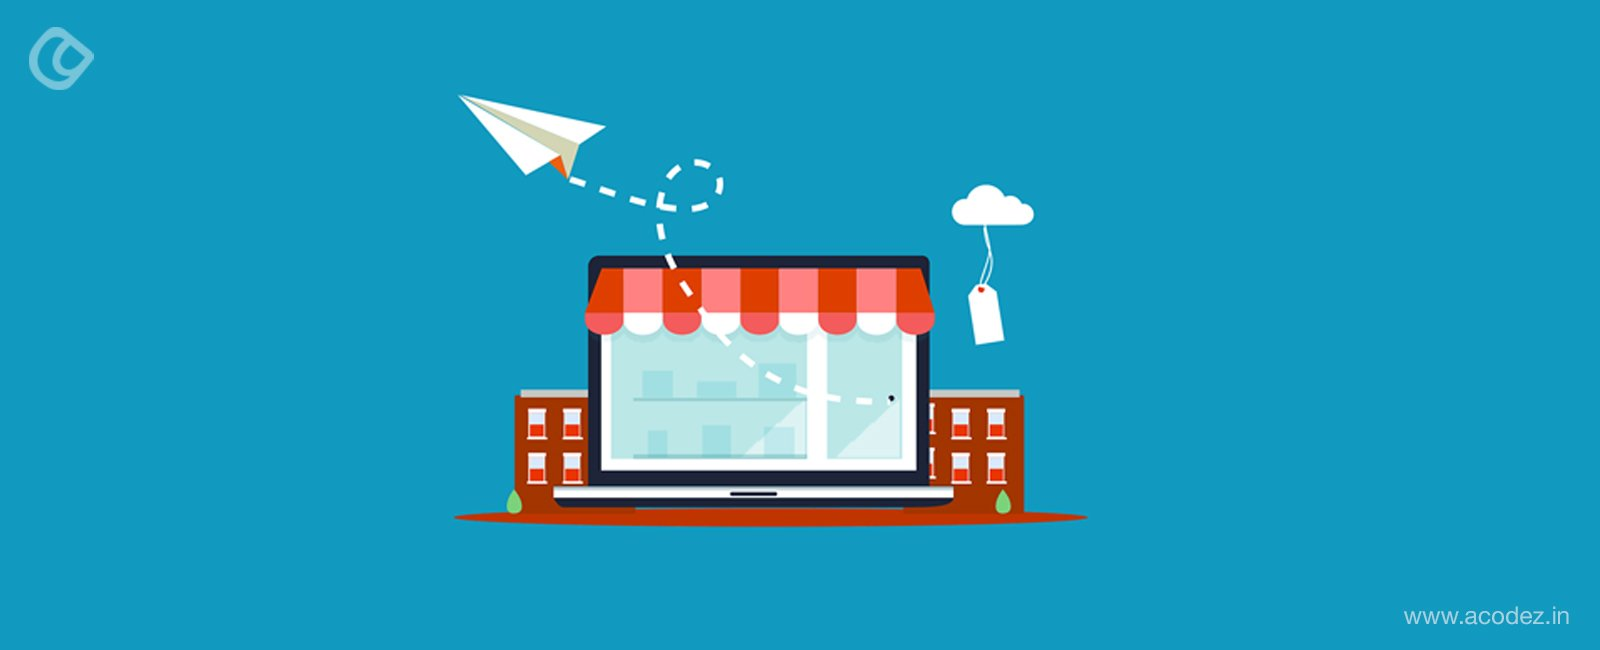 How to Grow an E-Commerce Business with Digital Marketing?